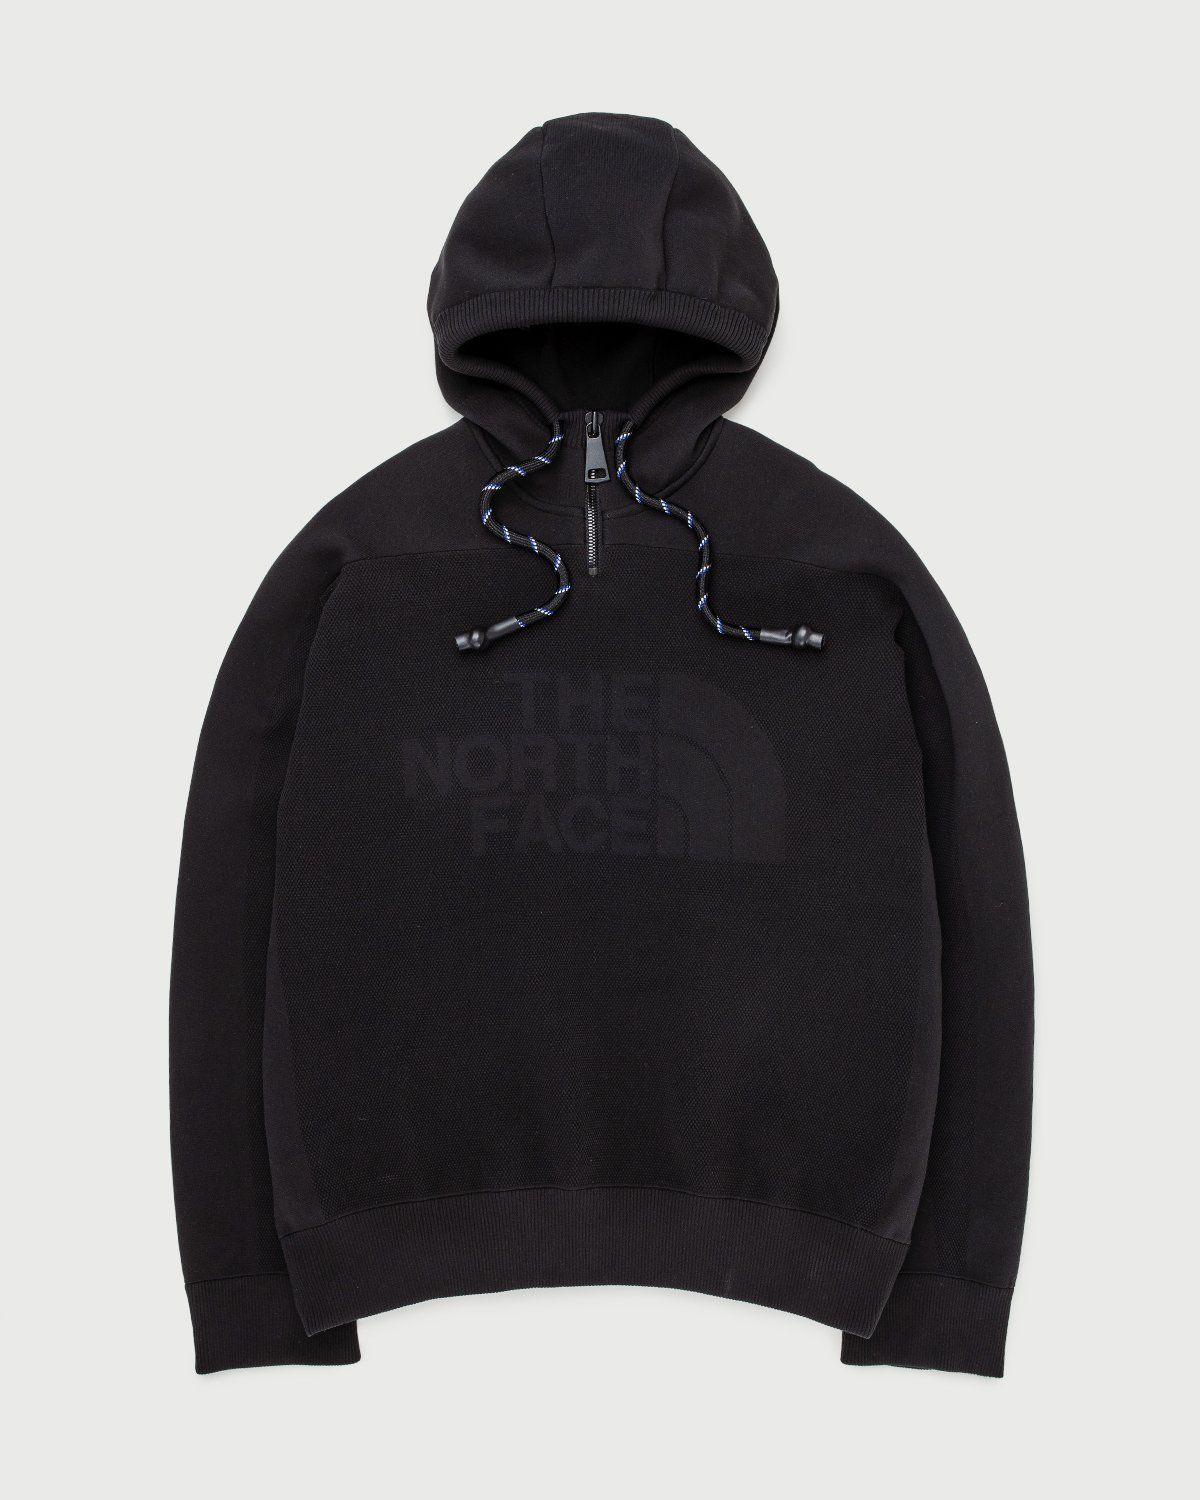 The North Face Black Series - Engineered Knit Hoodie Black - Image 1